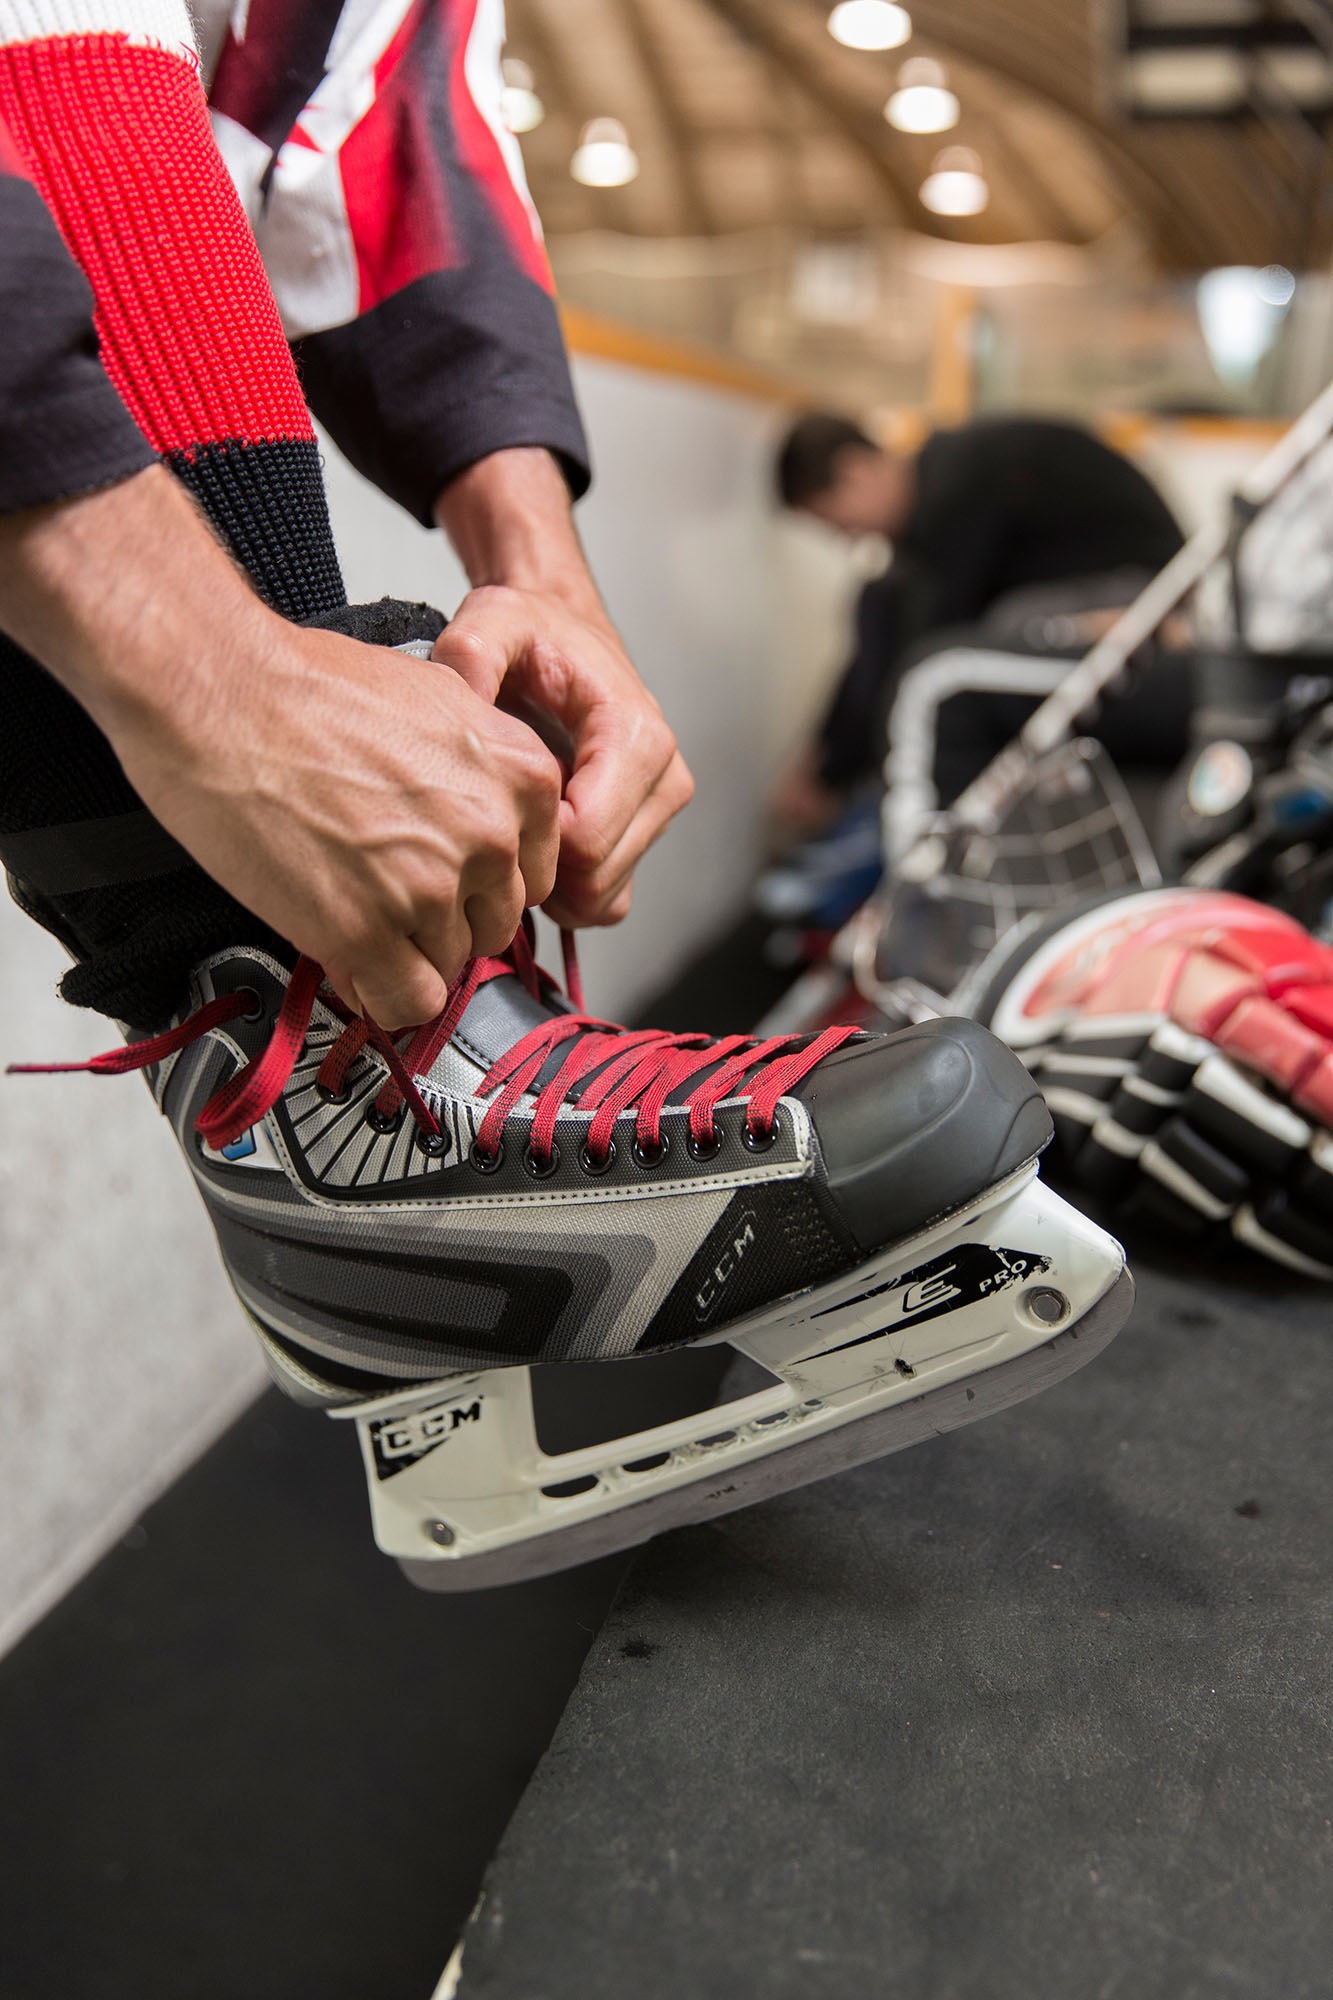 A hockey skate containing a Bladetech spring-loaded blade that allows skaters to go faster and protect against injuries. The new skate was developed by University of Waterloo Engineering graduate, Jeffrey Azzolin. Copyright University of Waterloo